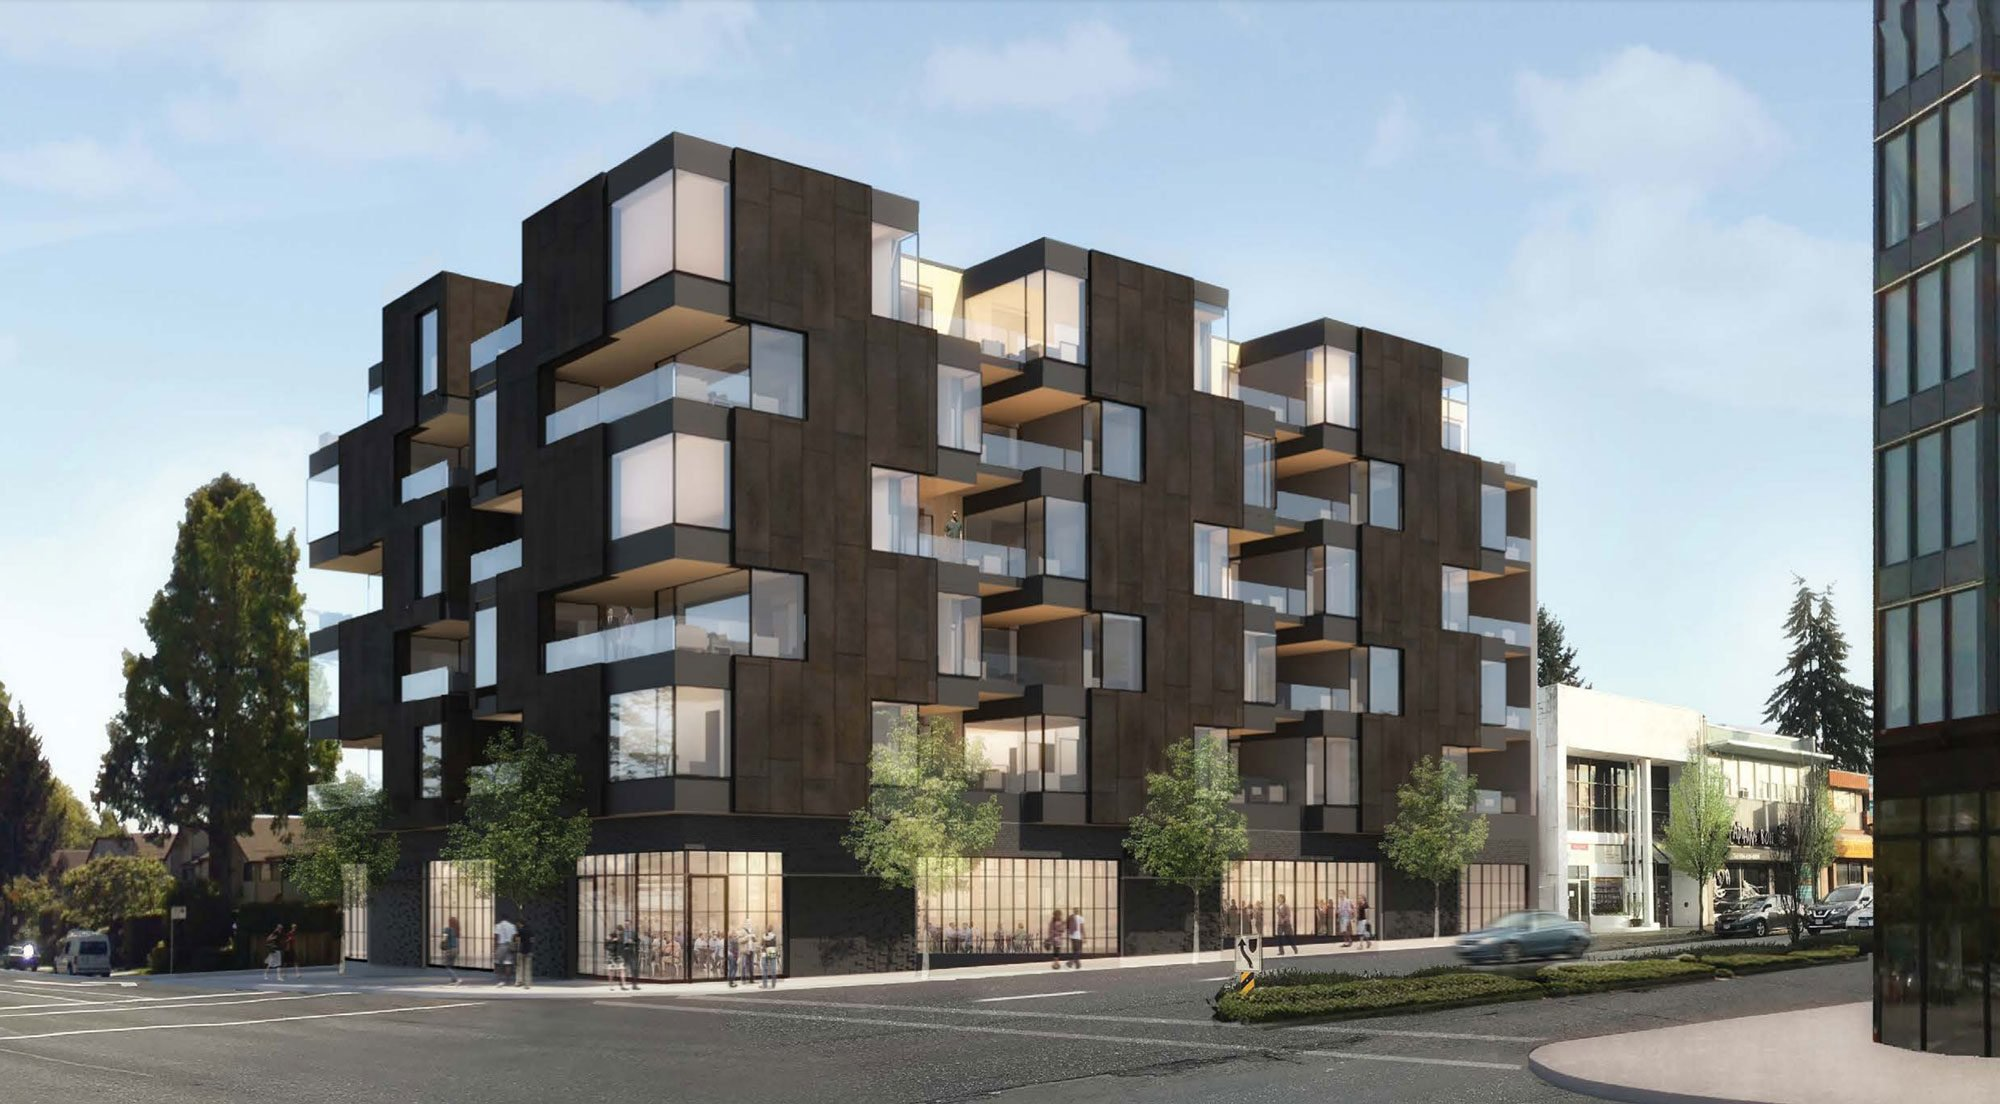 Building composed of 'shifting boxes' slated for Cambie and West 16th